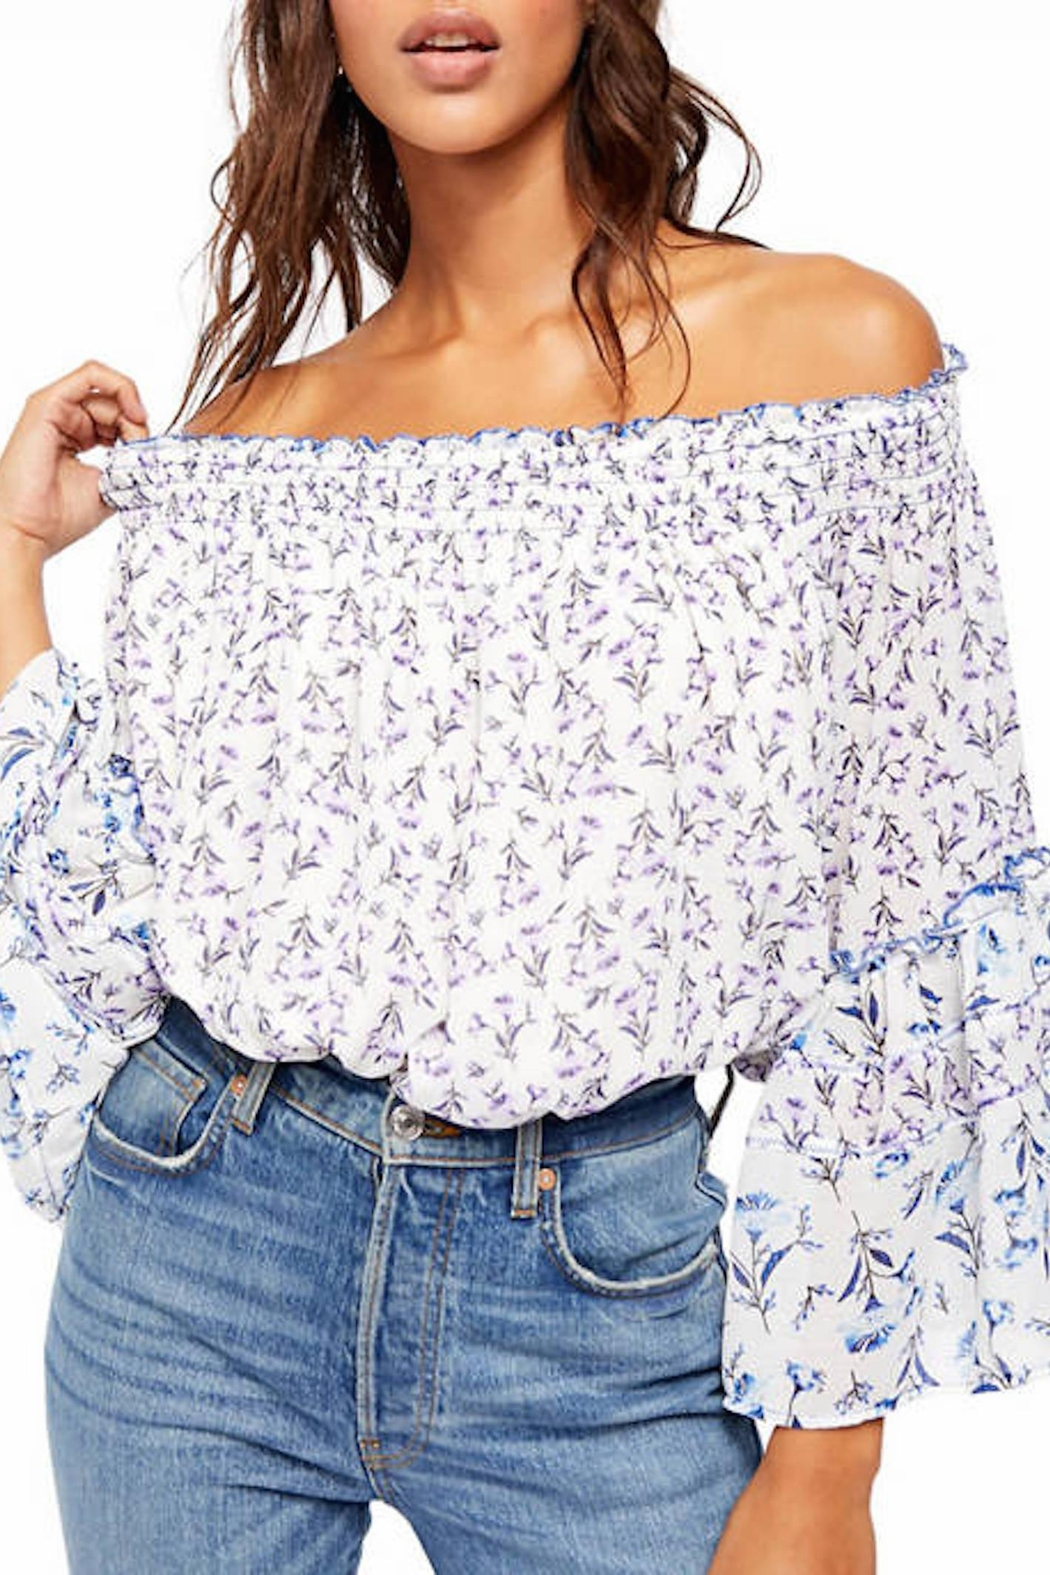 Free People Fp Rose-Valley Blouse - Main Image